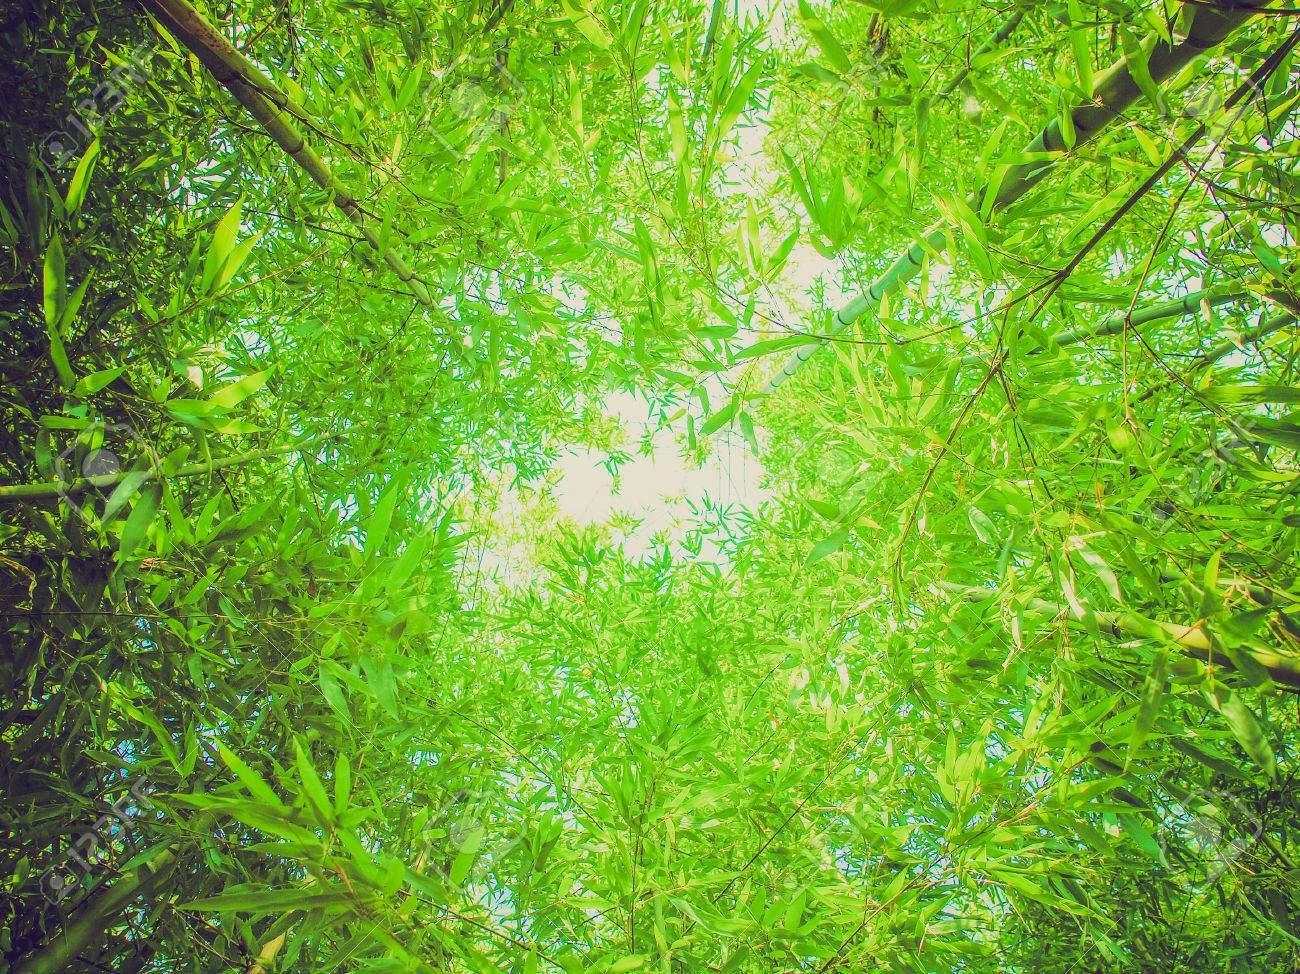 Vintage Looking Bamboo Plants Forest Aka Plantae Angiosperms